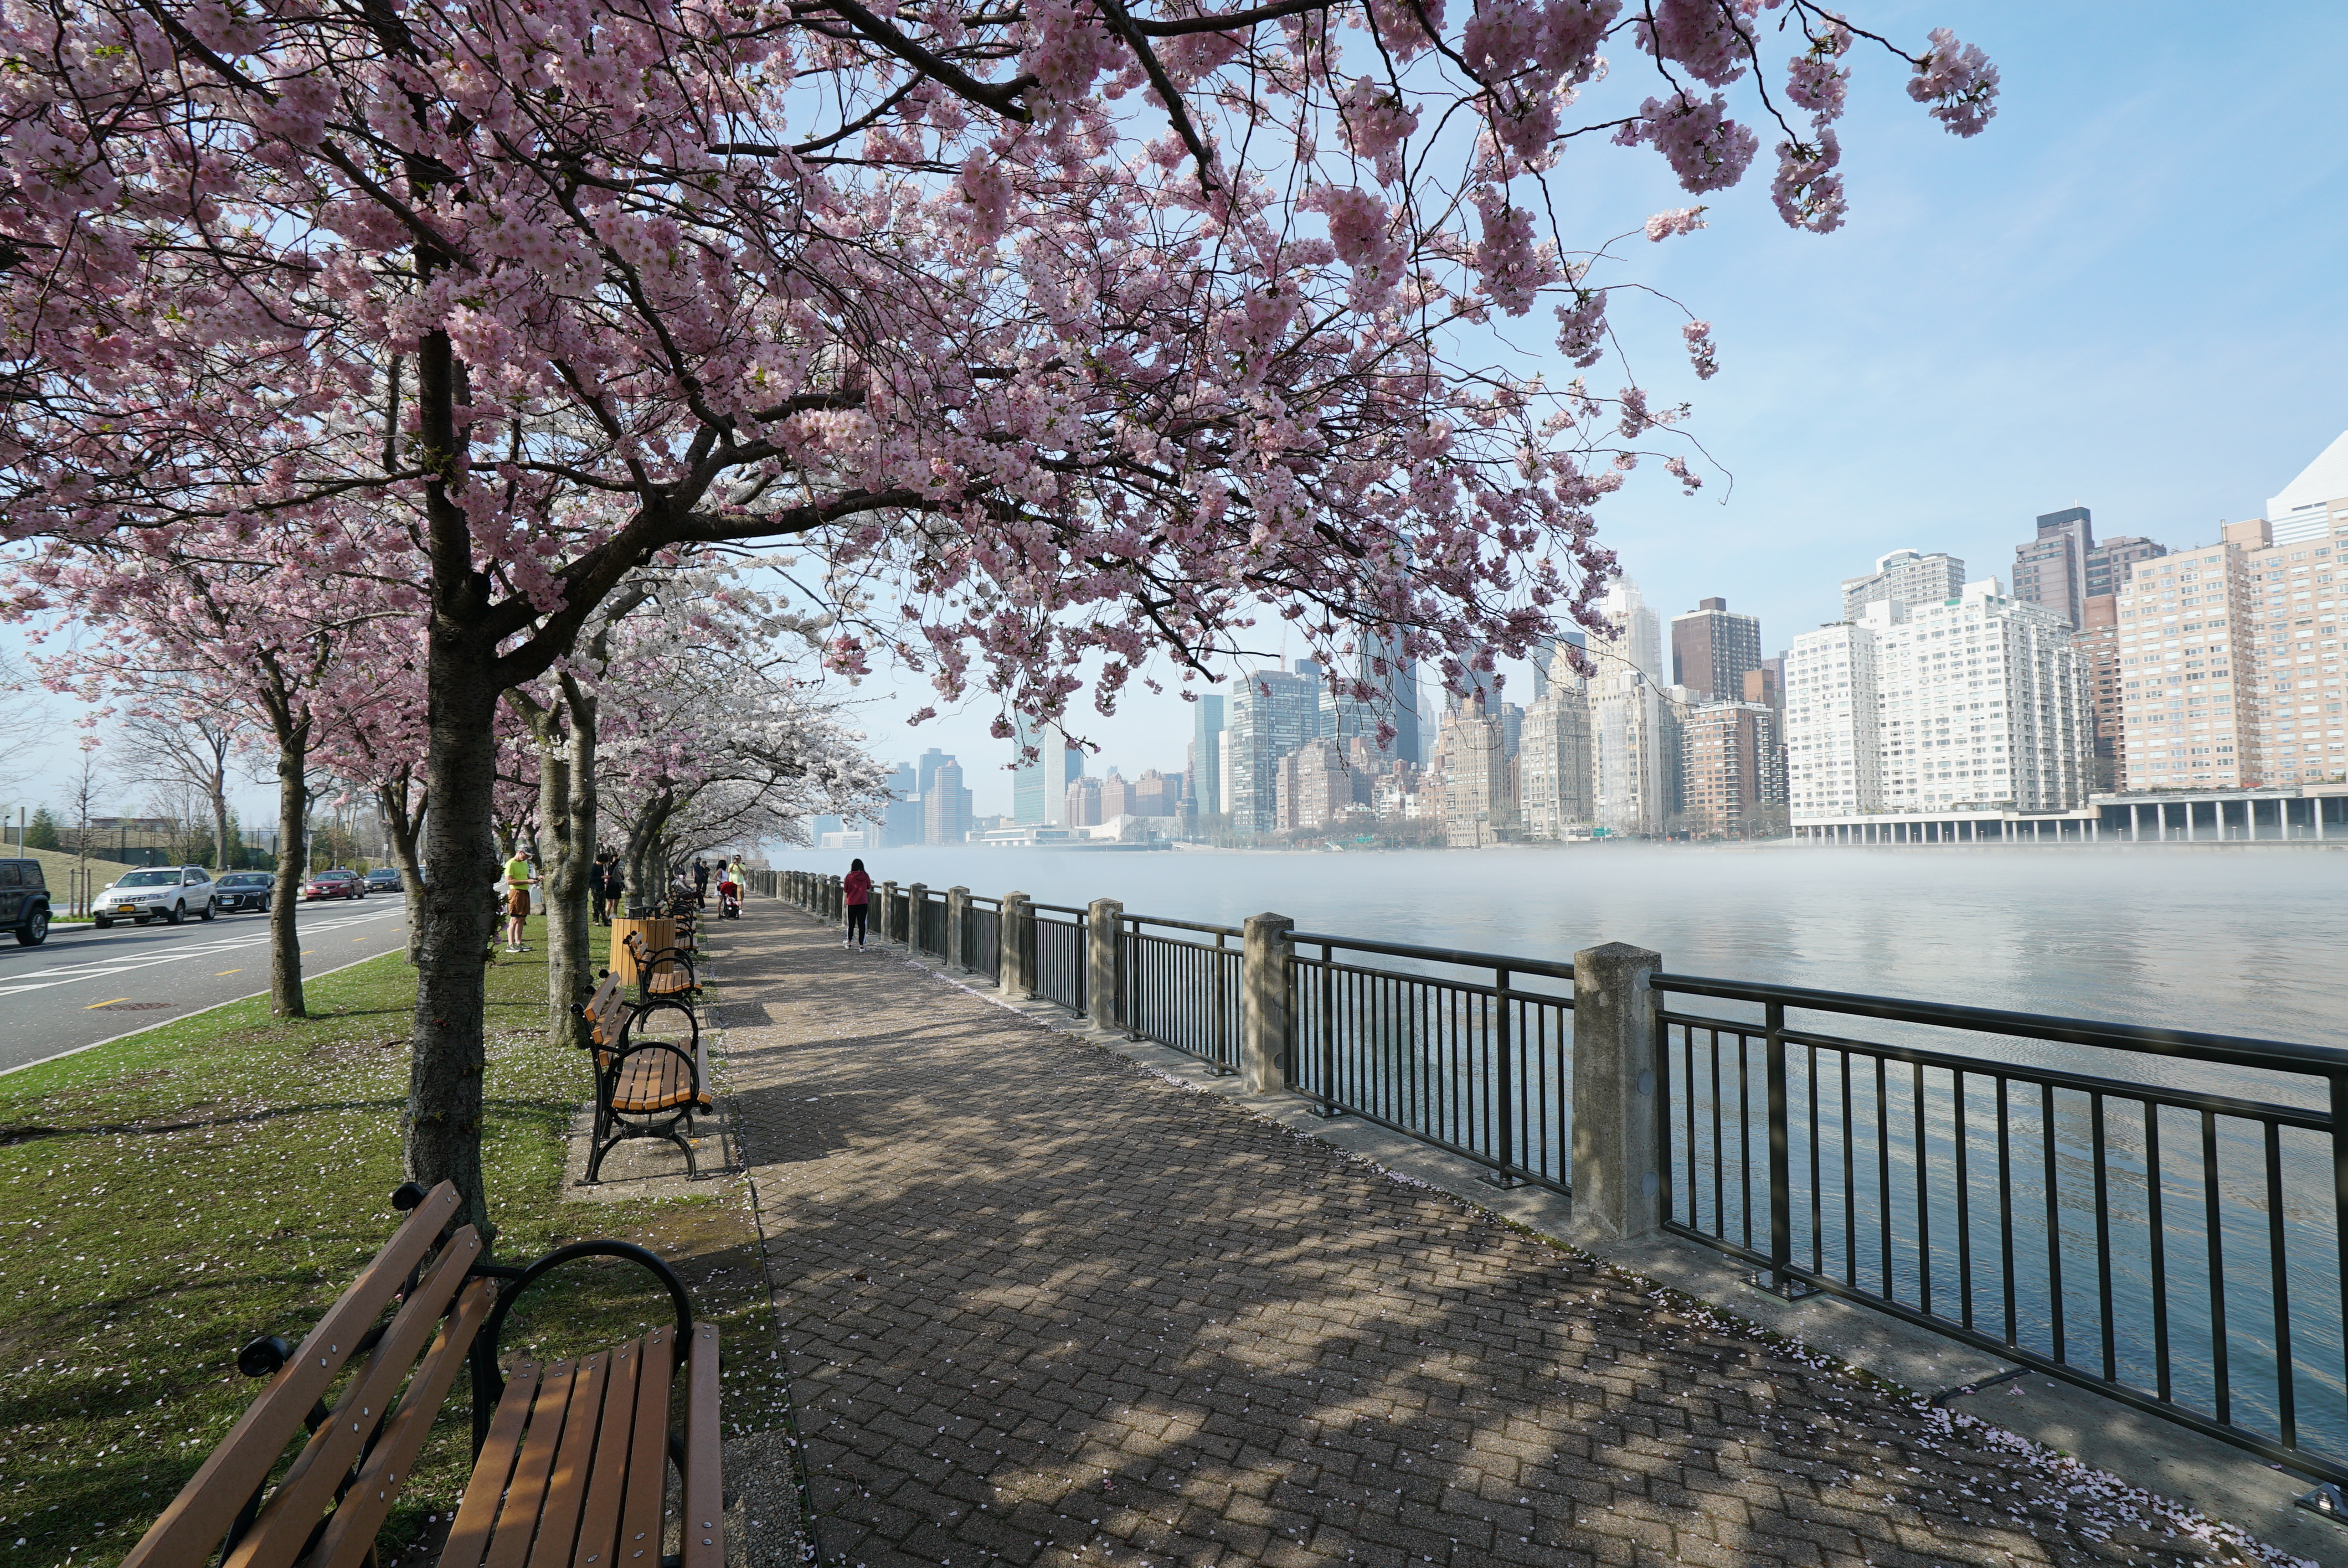 The Best Places To Catch The Blossoms This Season